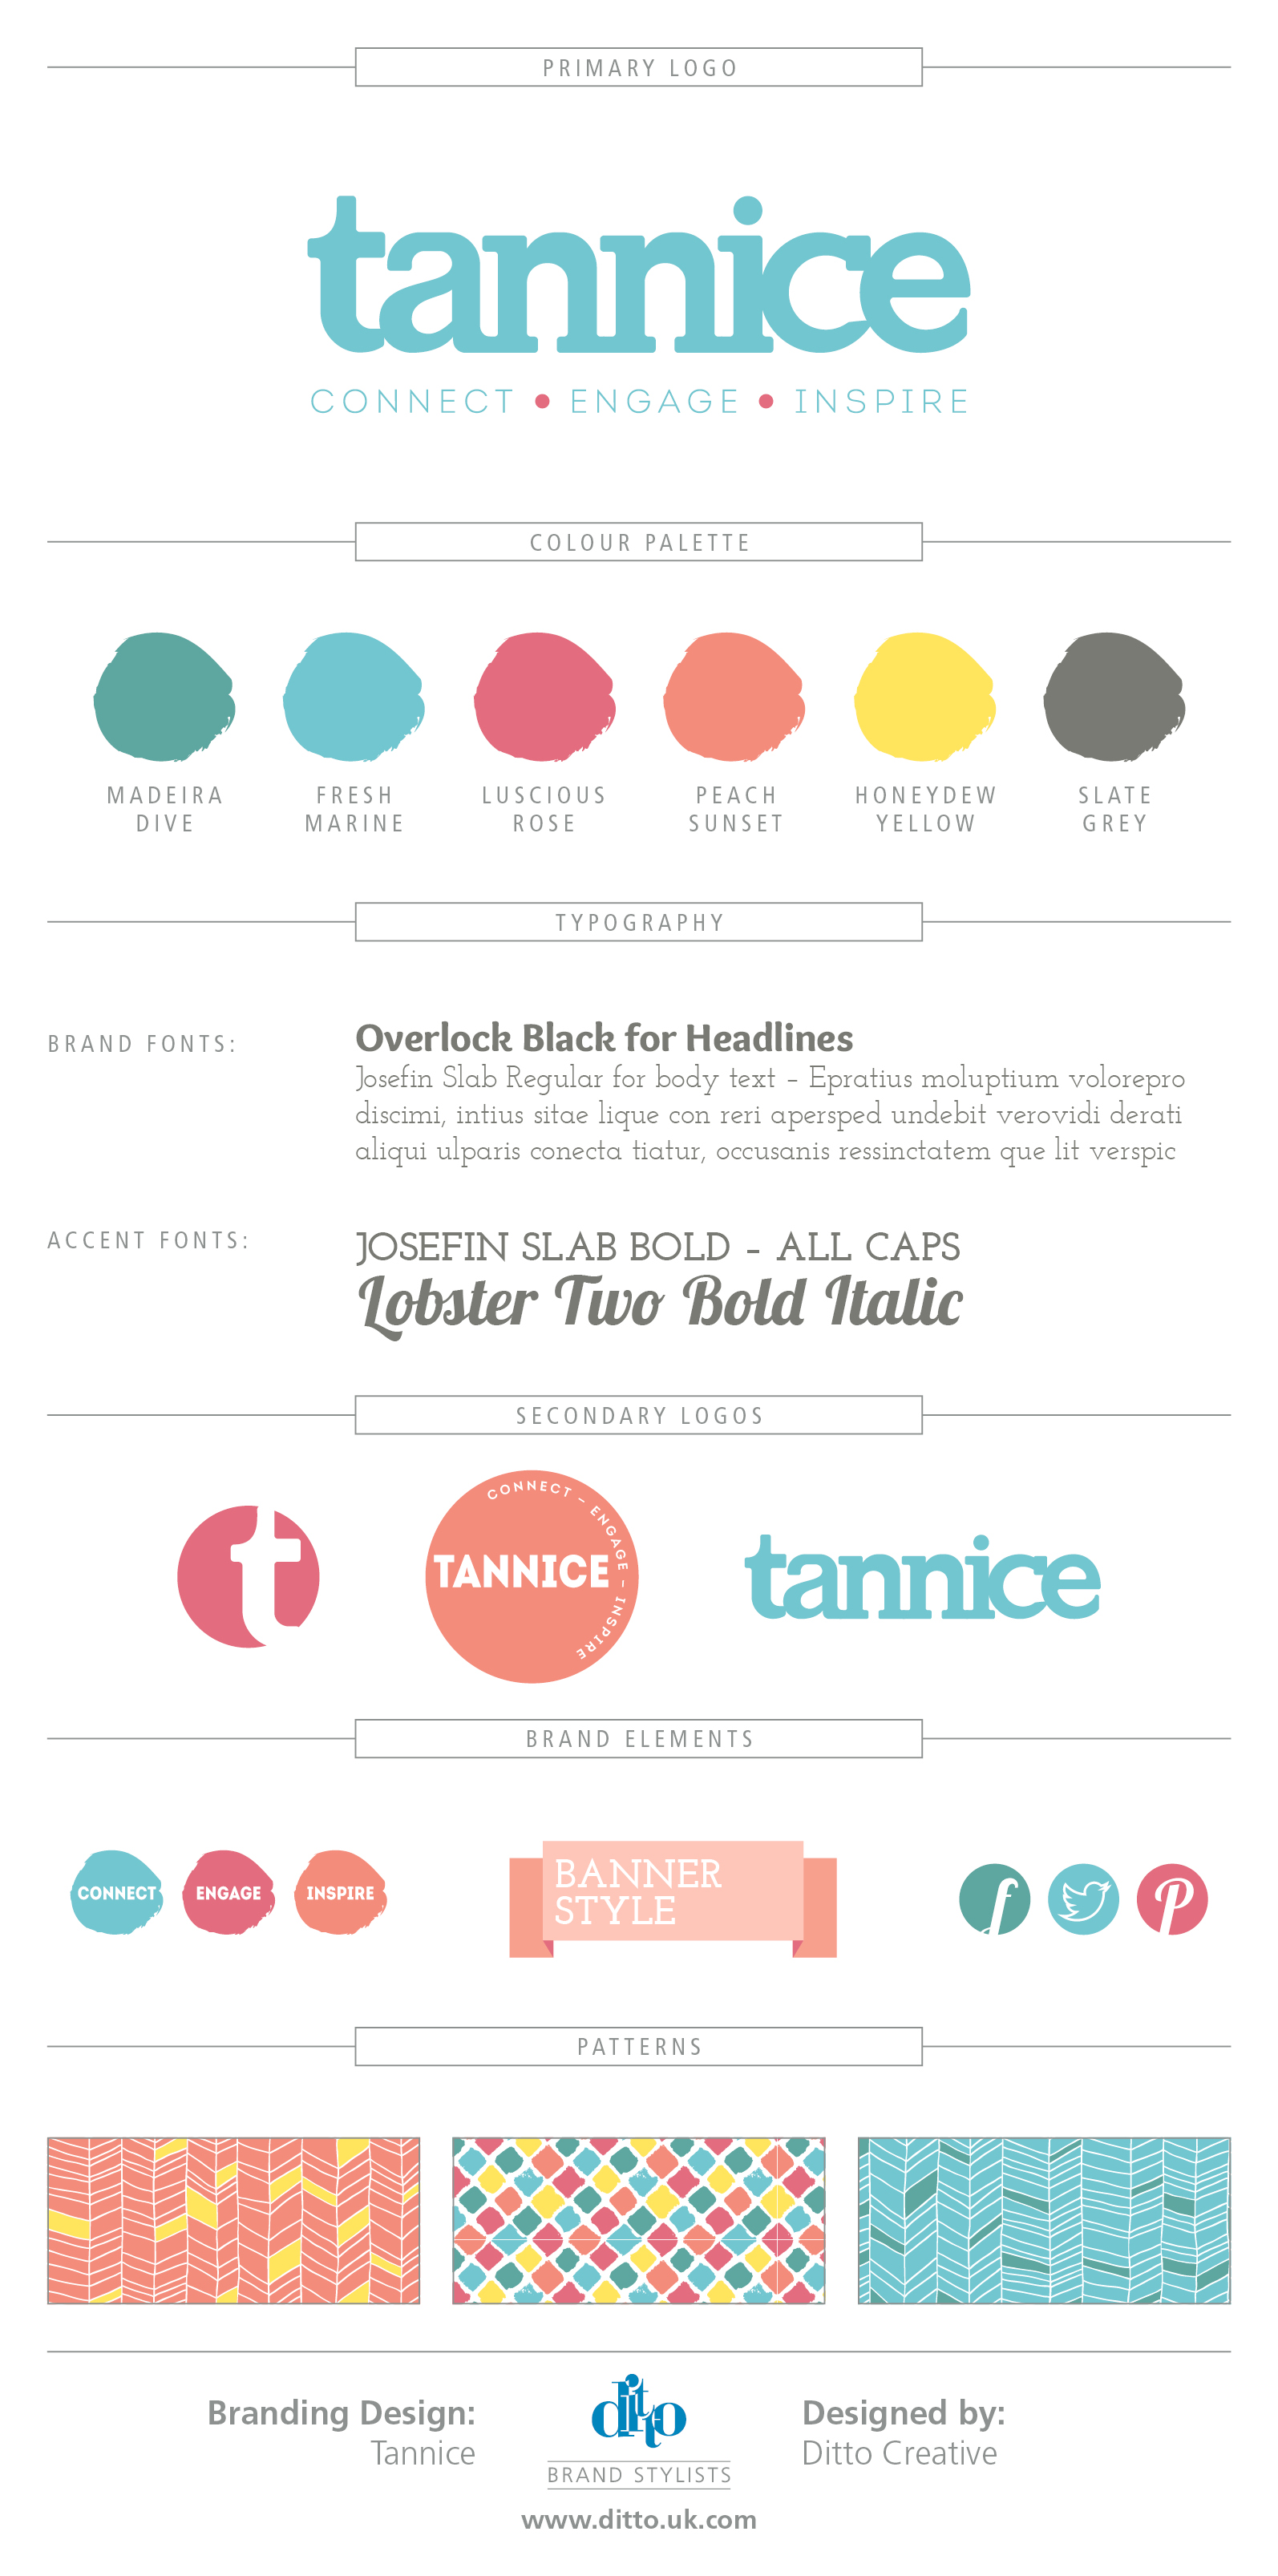 Tannice - Brand Board. Brand identity, logo design and brand styling by Ditto Creative, Kent